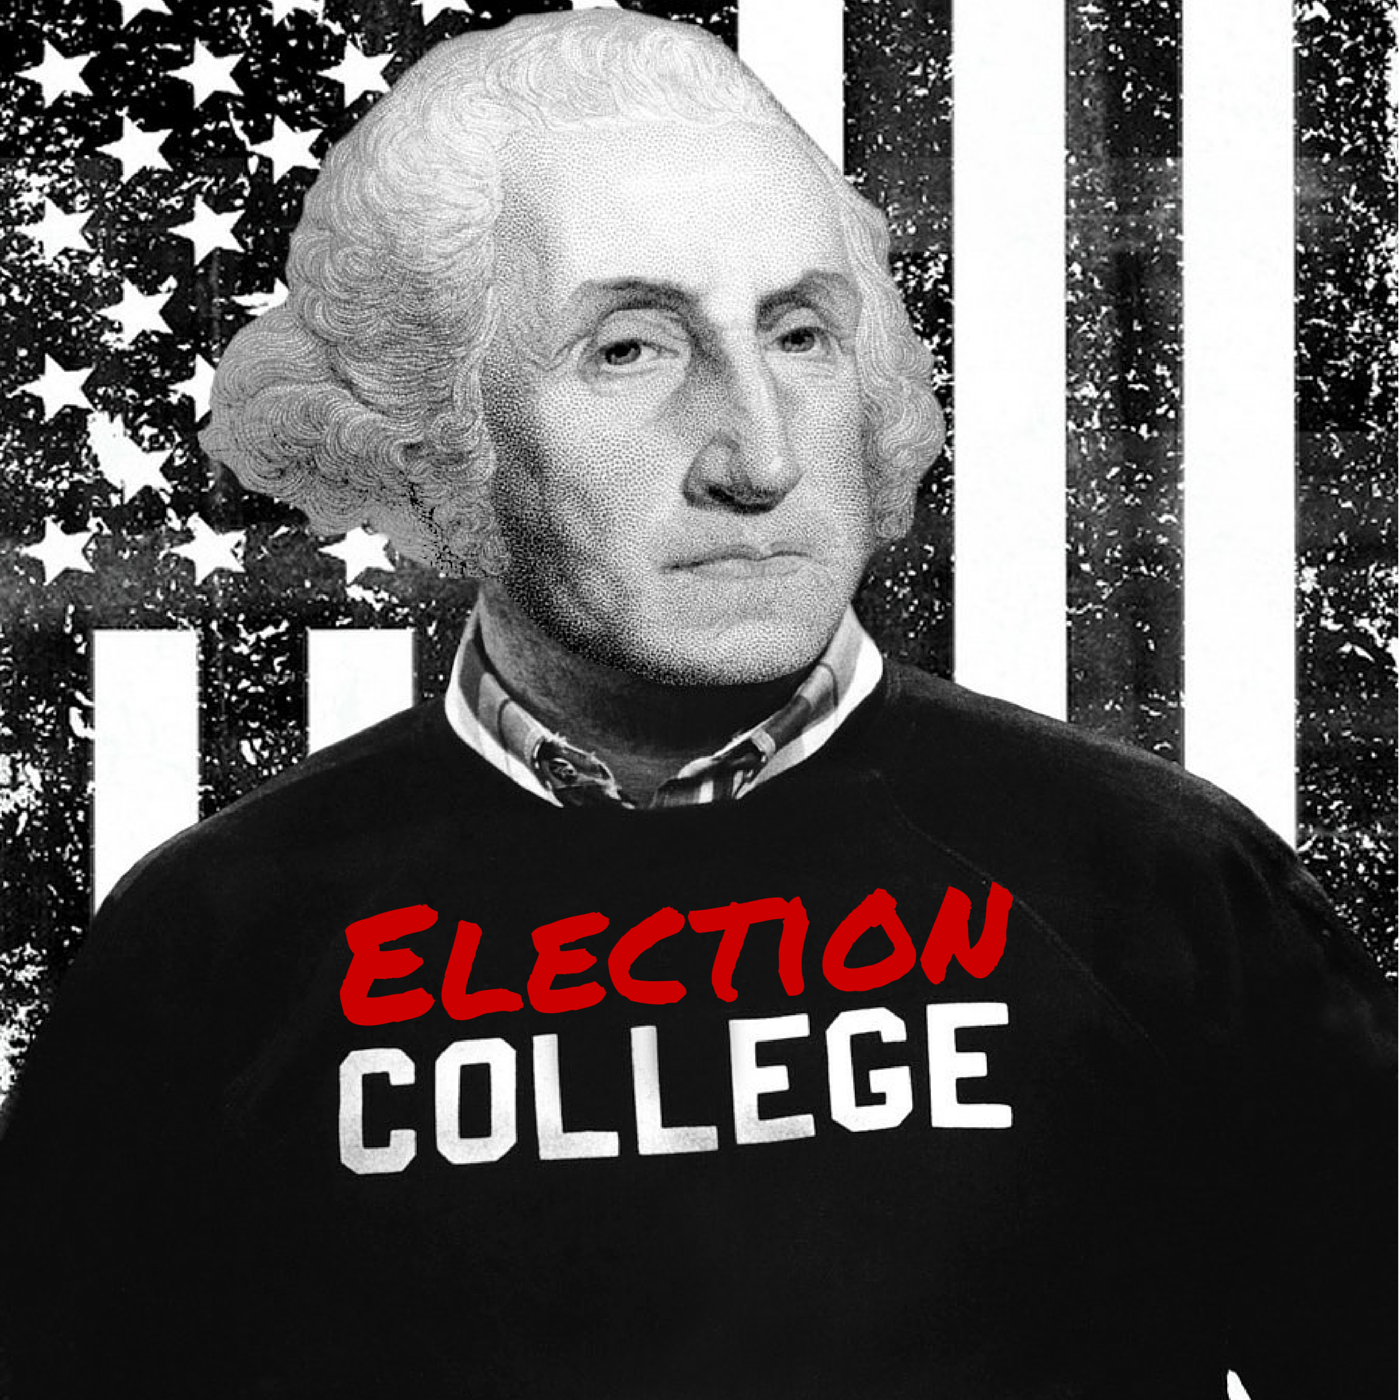 Stephen Douglas - The Early Years (Part 1) | Episode #127 | Election College: United States Presidential Election History